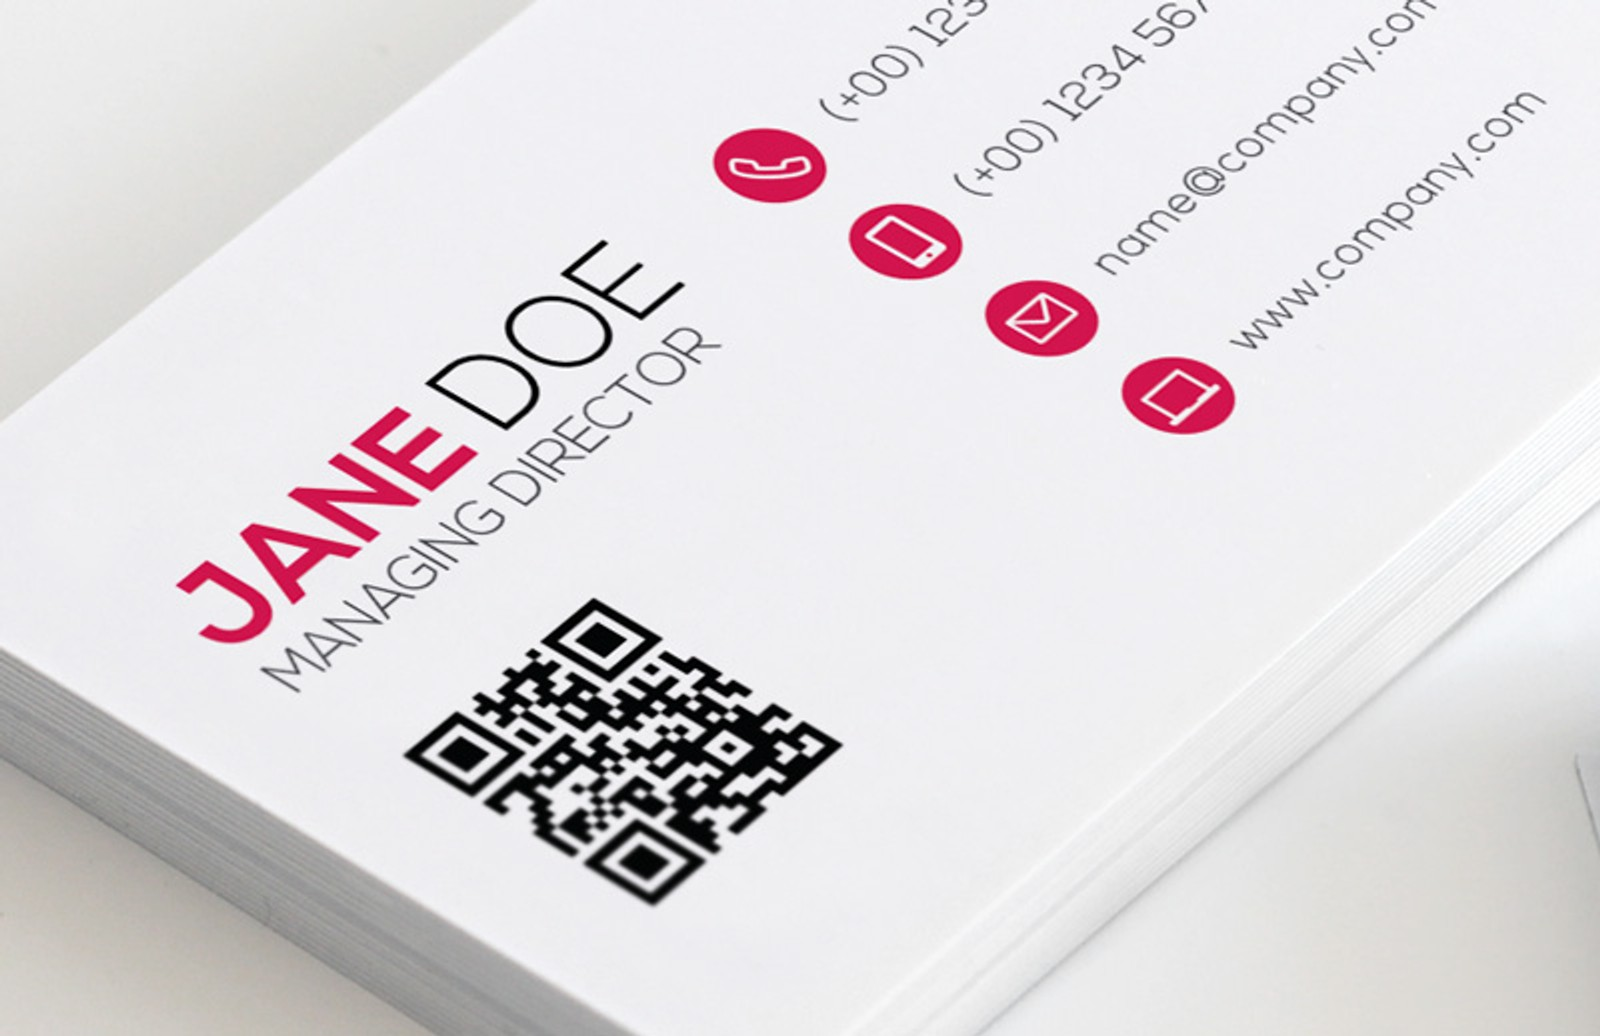 Qr code business card template vol 2 medialoot qr code business card vol 2 preview 1 friedricerecipe Gallery